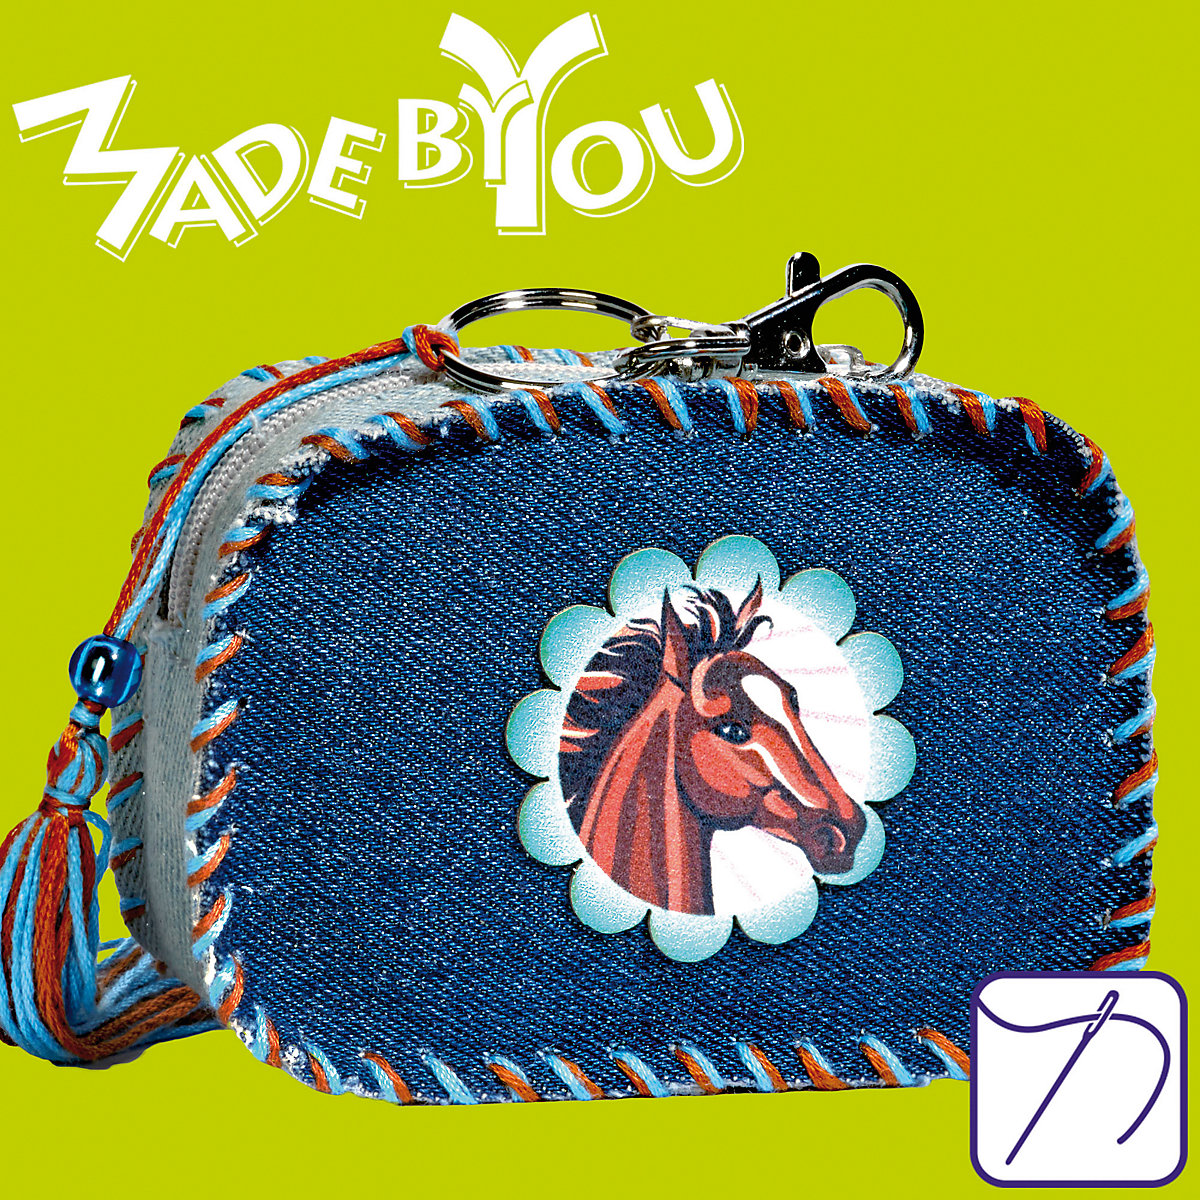 MADE BY YOU Nähset: Patch Me Bag Pferde Busch KihYT